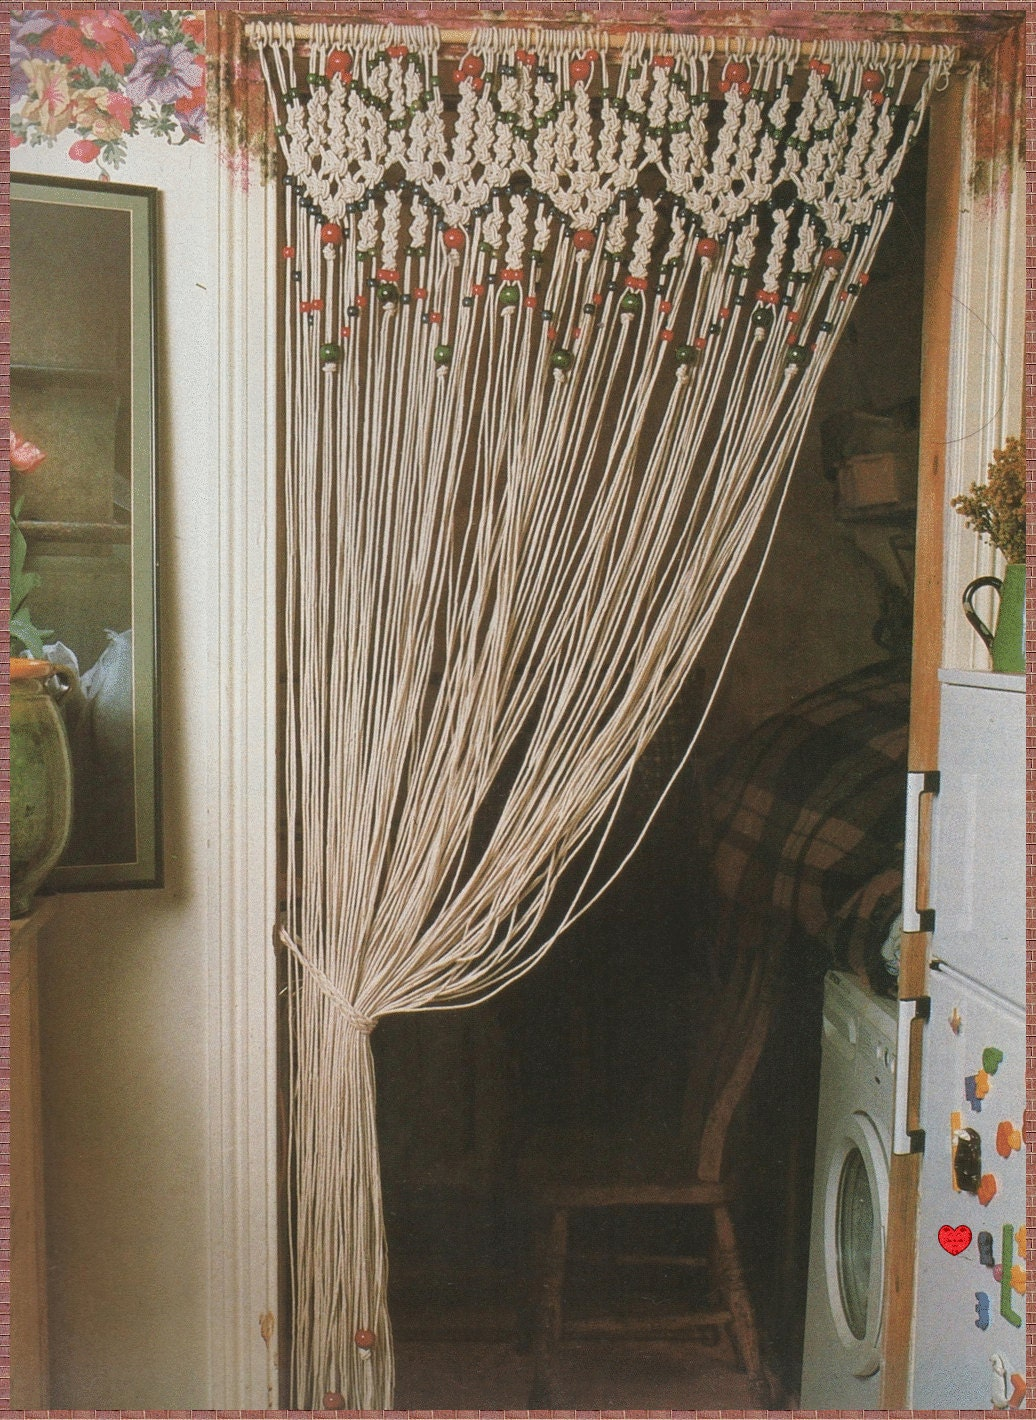 Vintage Macrame Pattern 1970s To Make A Decorative Room